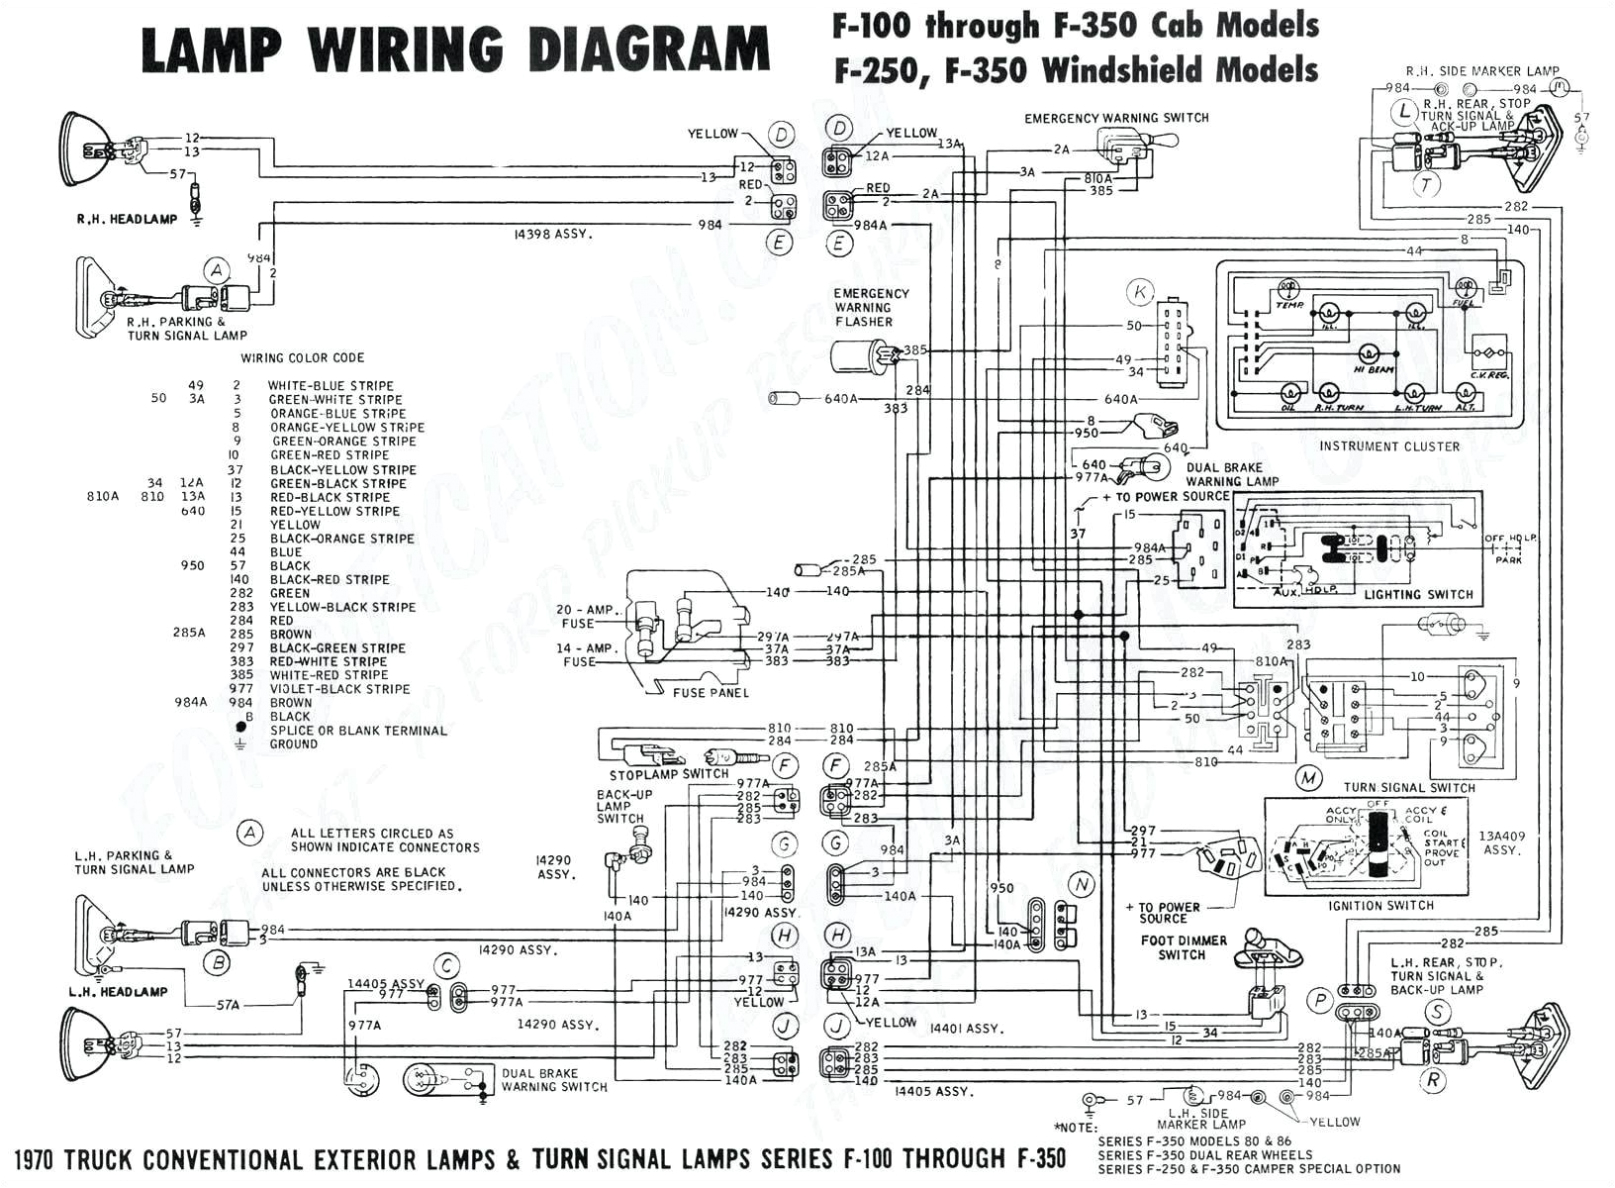 2003 ford escape transmission wiring diagram my wiring diagram 2003 f350 wiring diagram wiring diagram show